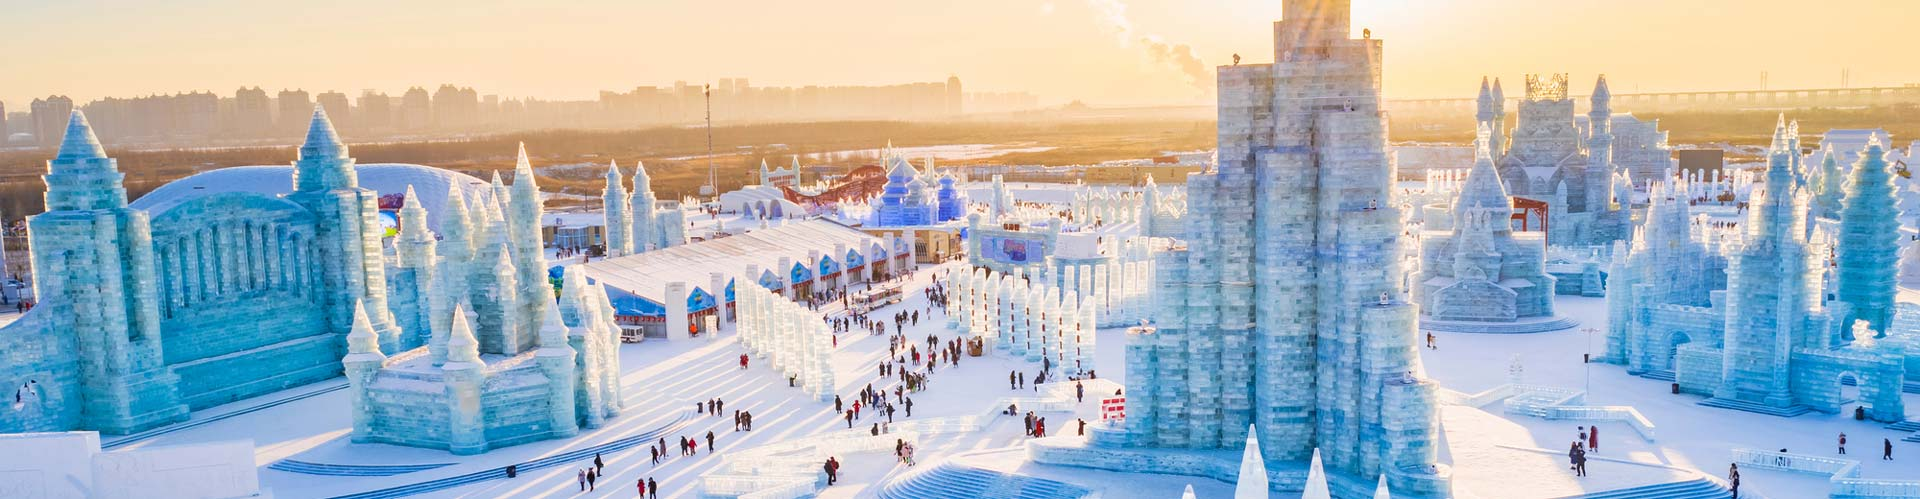 5 Days Harbin Skiing Tour